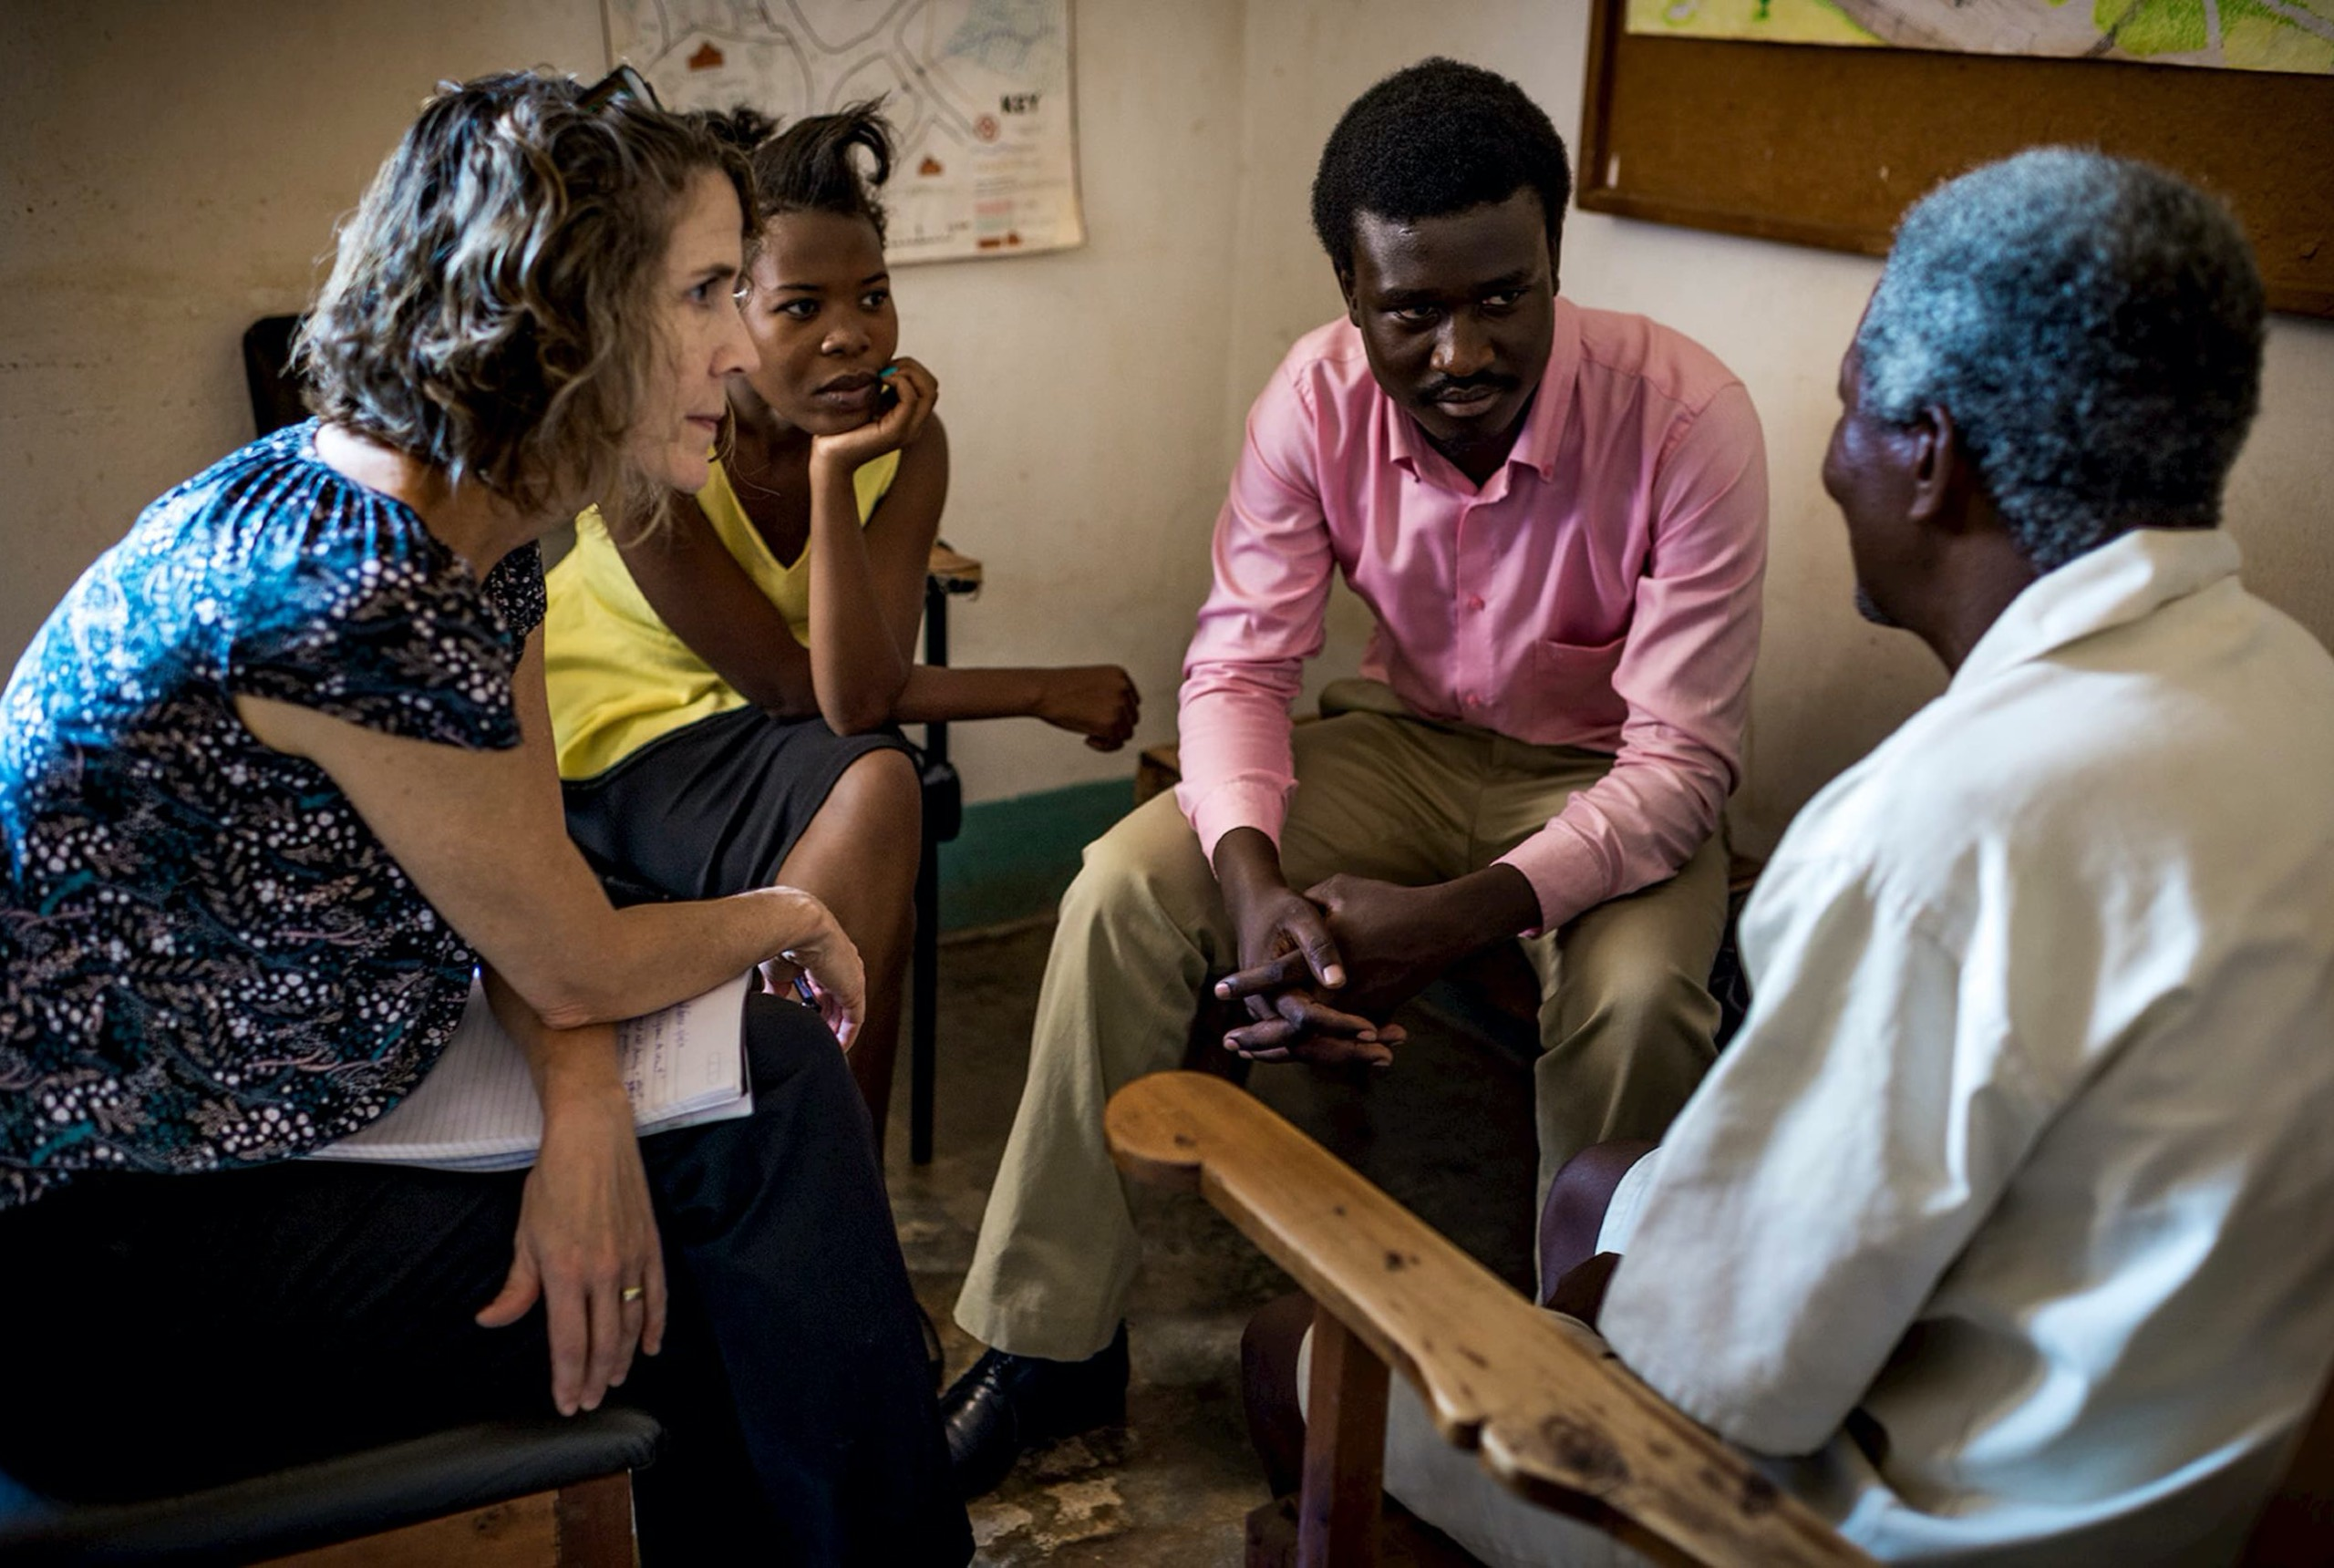 A woman in a blue patterned shirt, a woman in a yellow shirt, and a man in a pink shirt are looking at a man in a white shirt whose back is turned to the camera. All four of them are sitting in chairs.